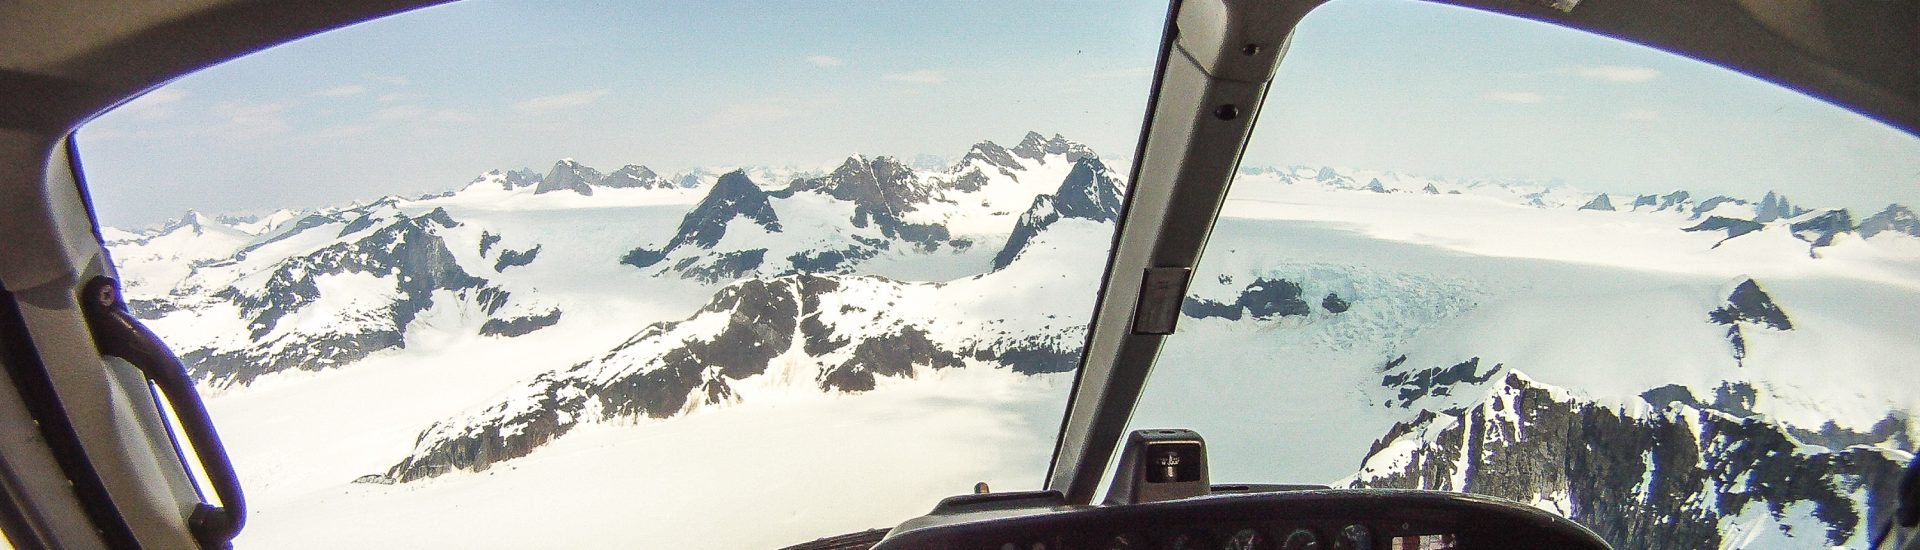 Helicopter flight to the Juneau Icefield for trekking on the Mendenhall Glacier from an Alaska cruise and Inside Passage. Helicopter cockpit from GoPro Cmaera